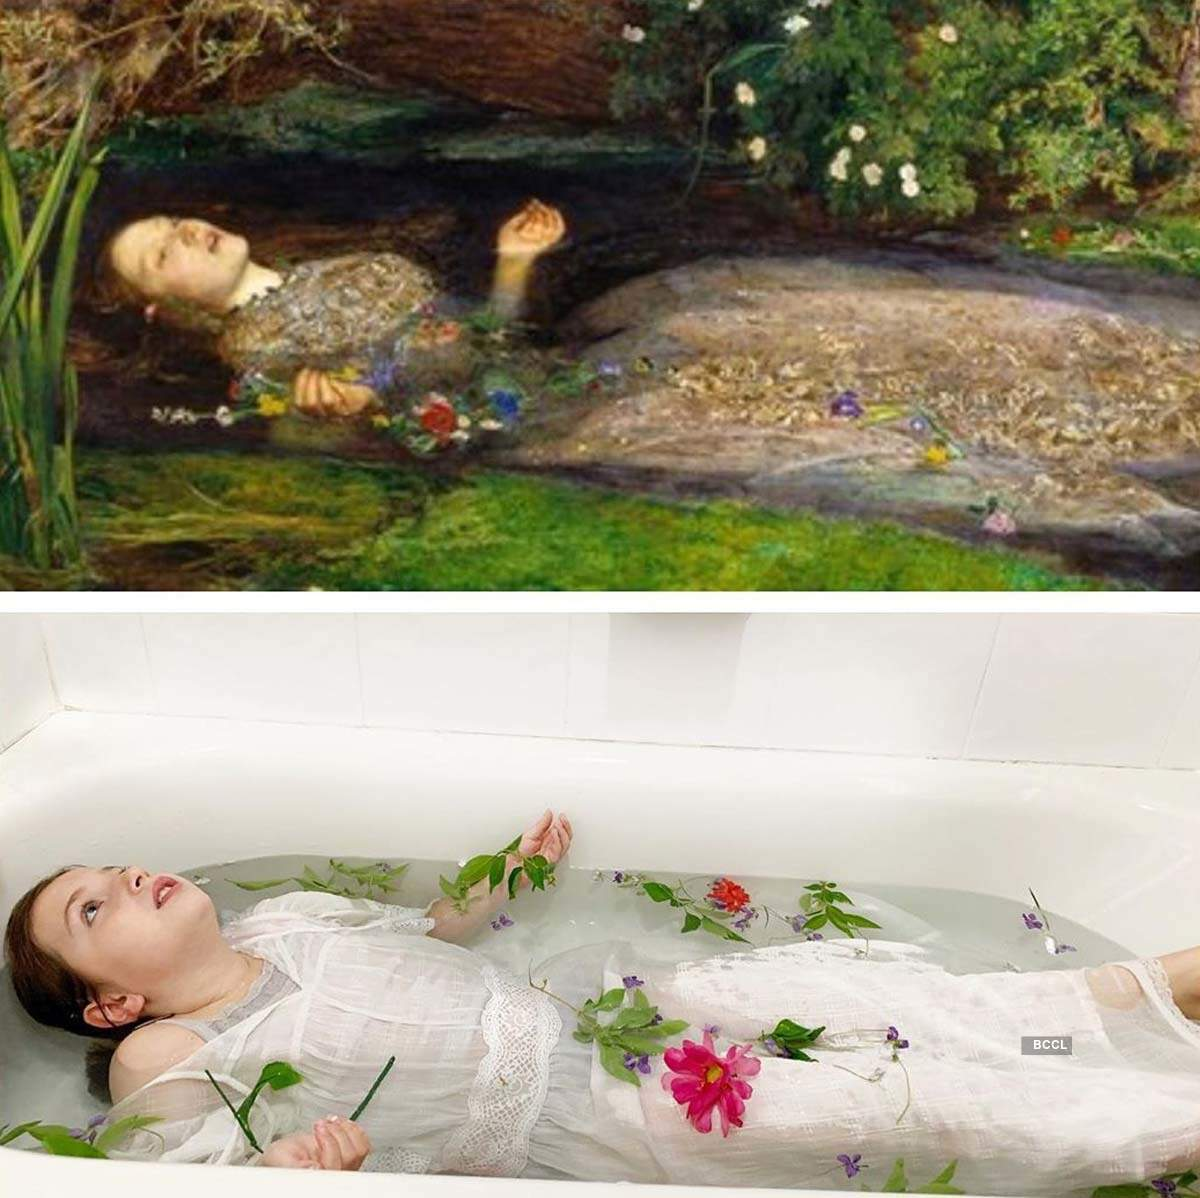 Rib-tickling pictures of quarantined people recreating famous works of art